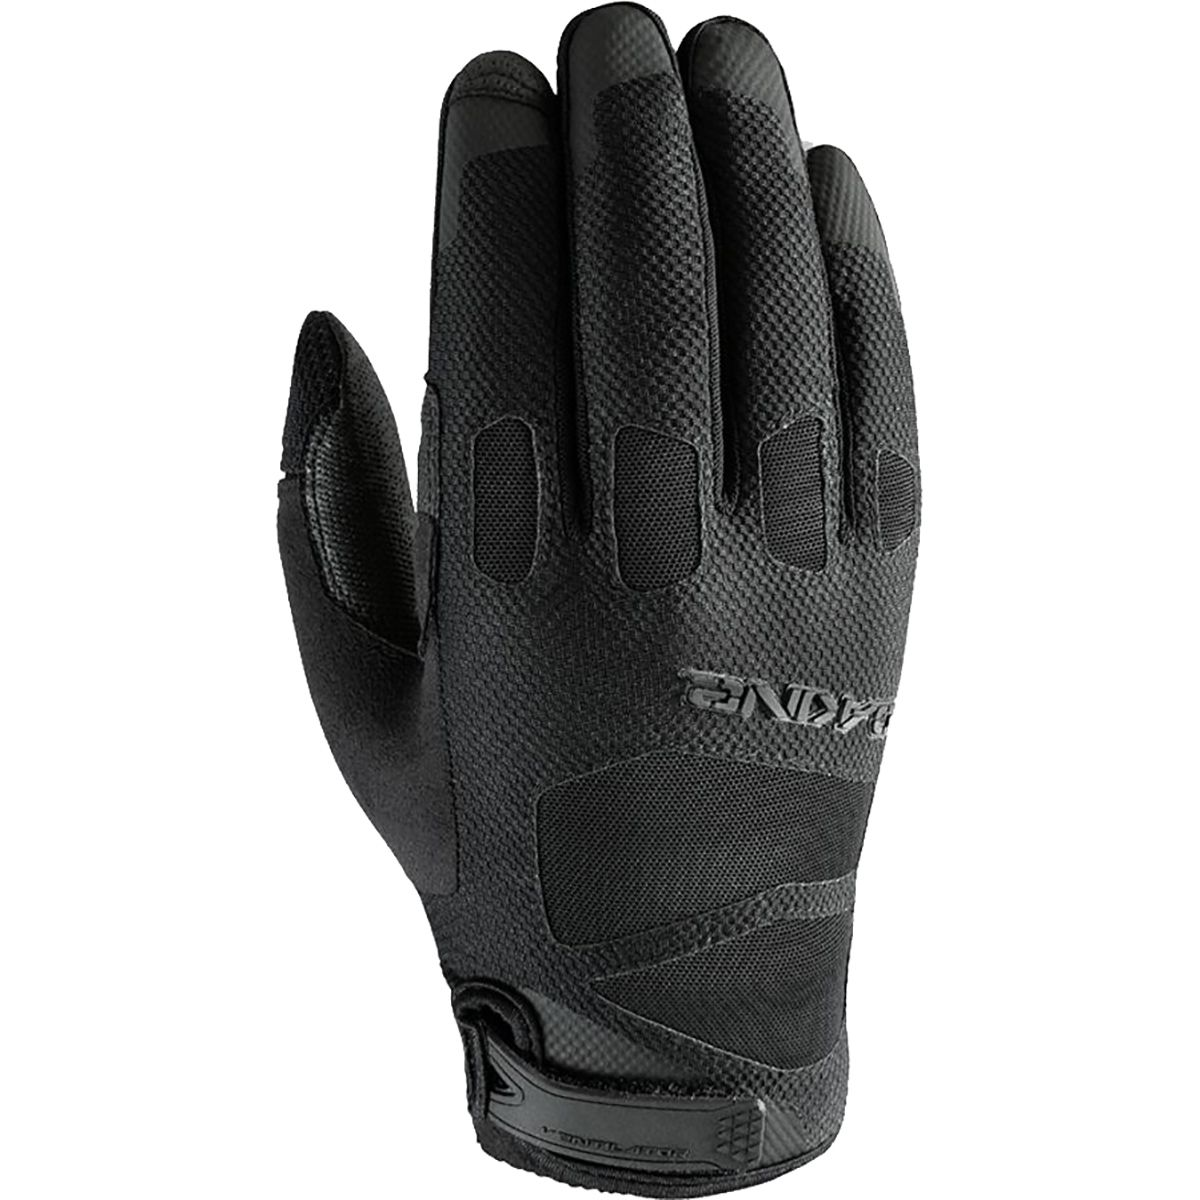 Black gloves mens - Dakine Ventilator Gloves Men S